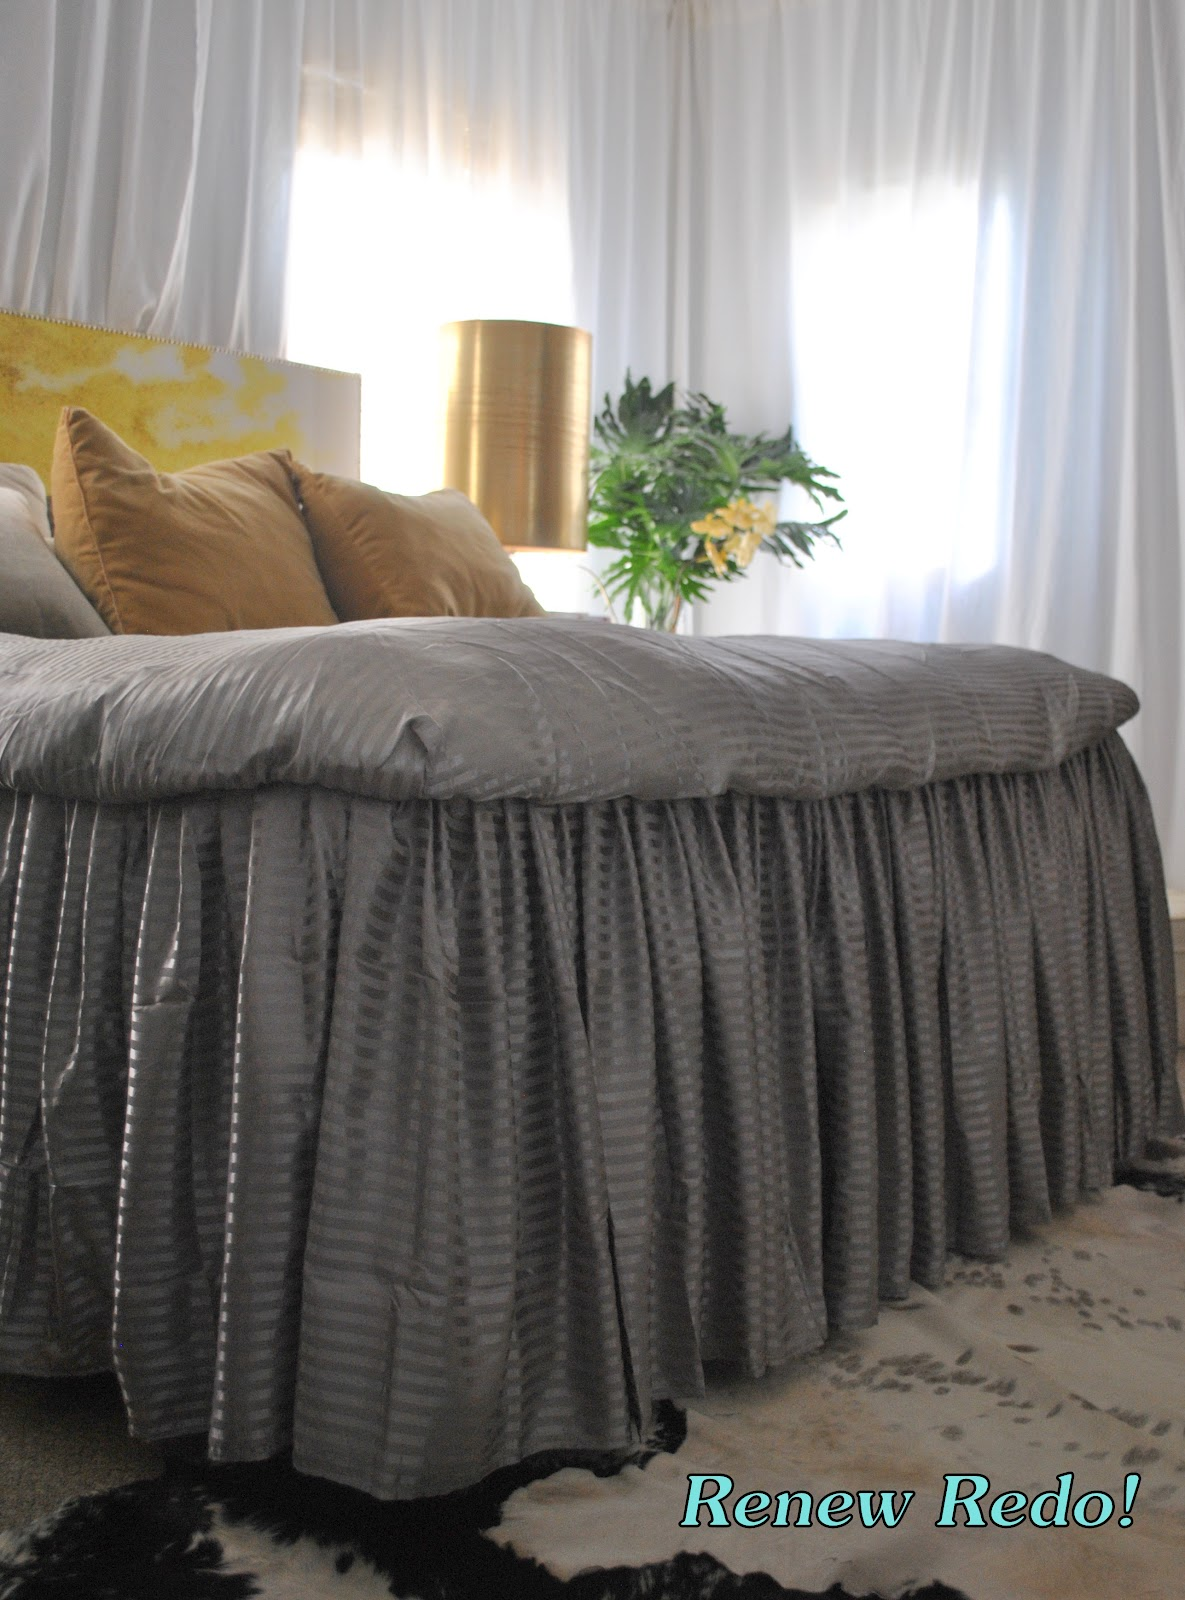 Renew Redo Ruffled Bed From Bed Sheets How To